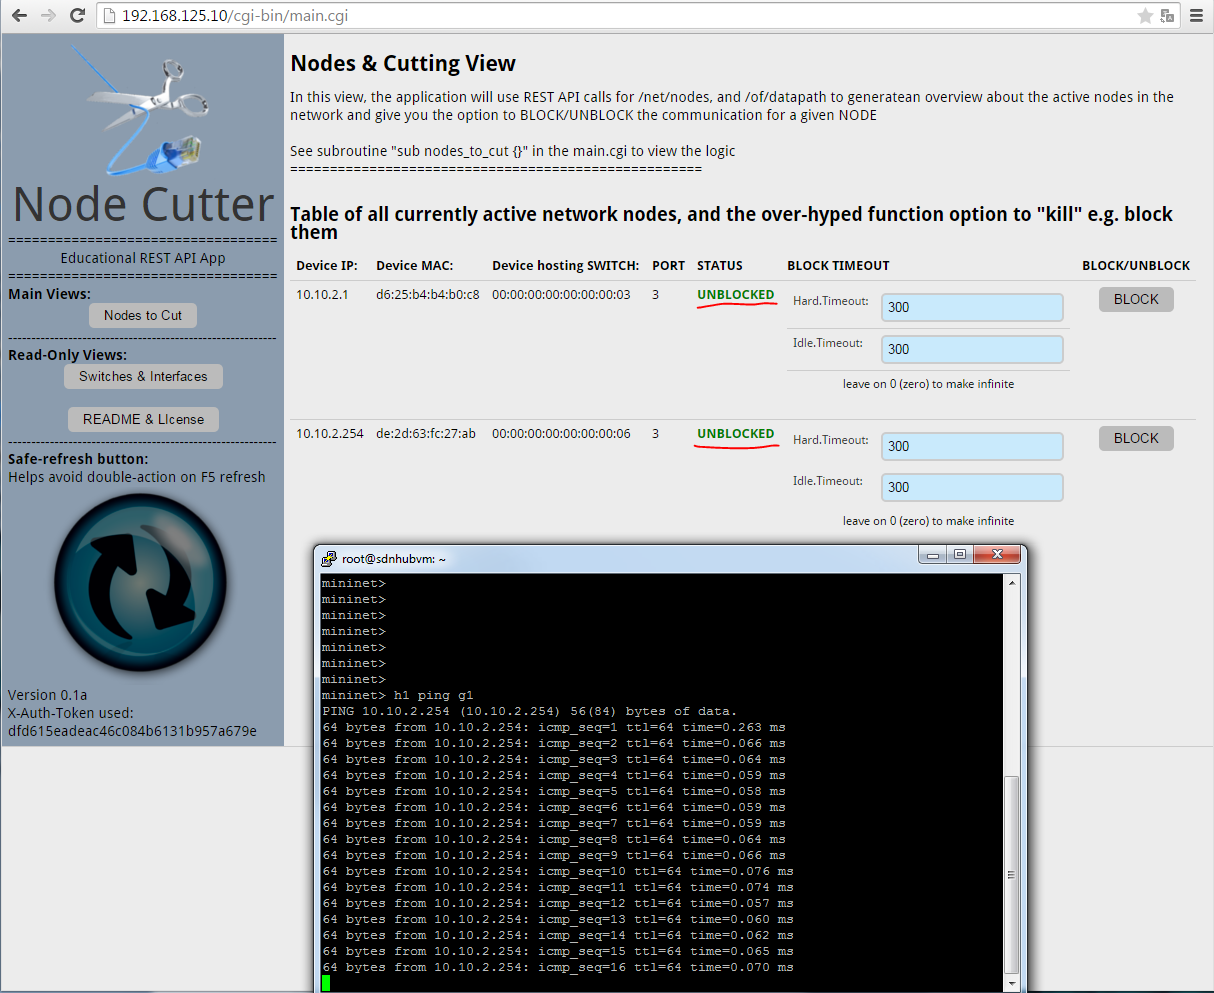 Node Cutter - v0.1 Nodes to Cut view, ping running between H1 and G1